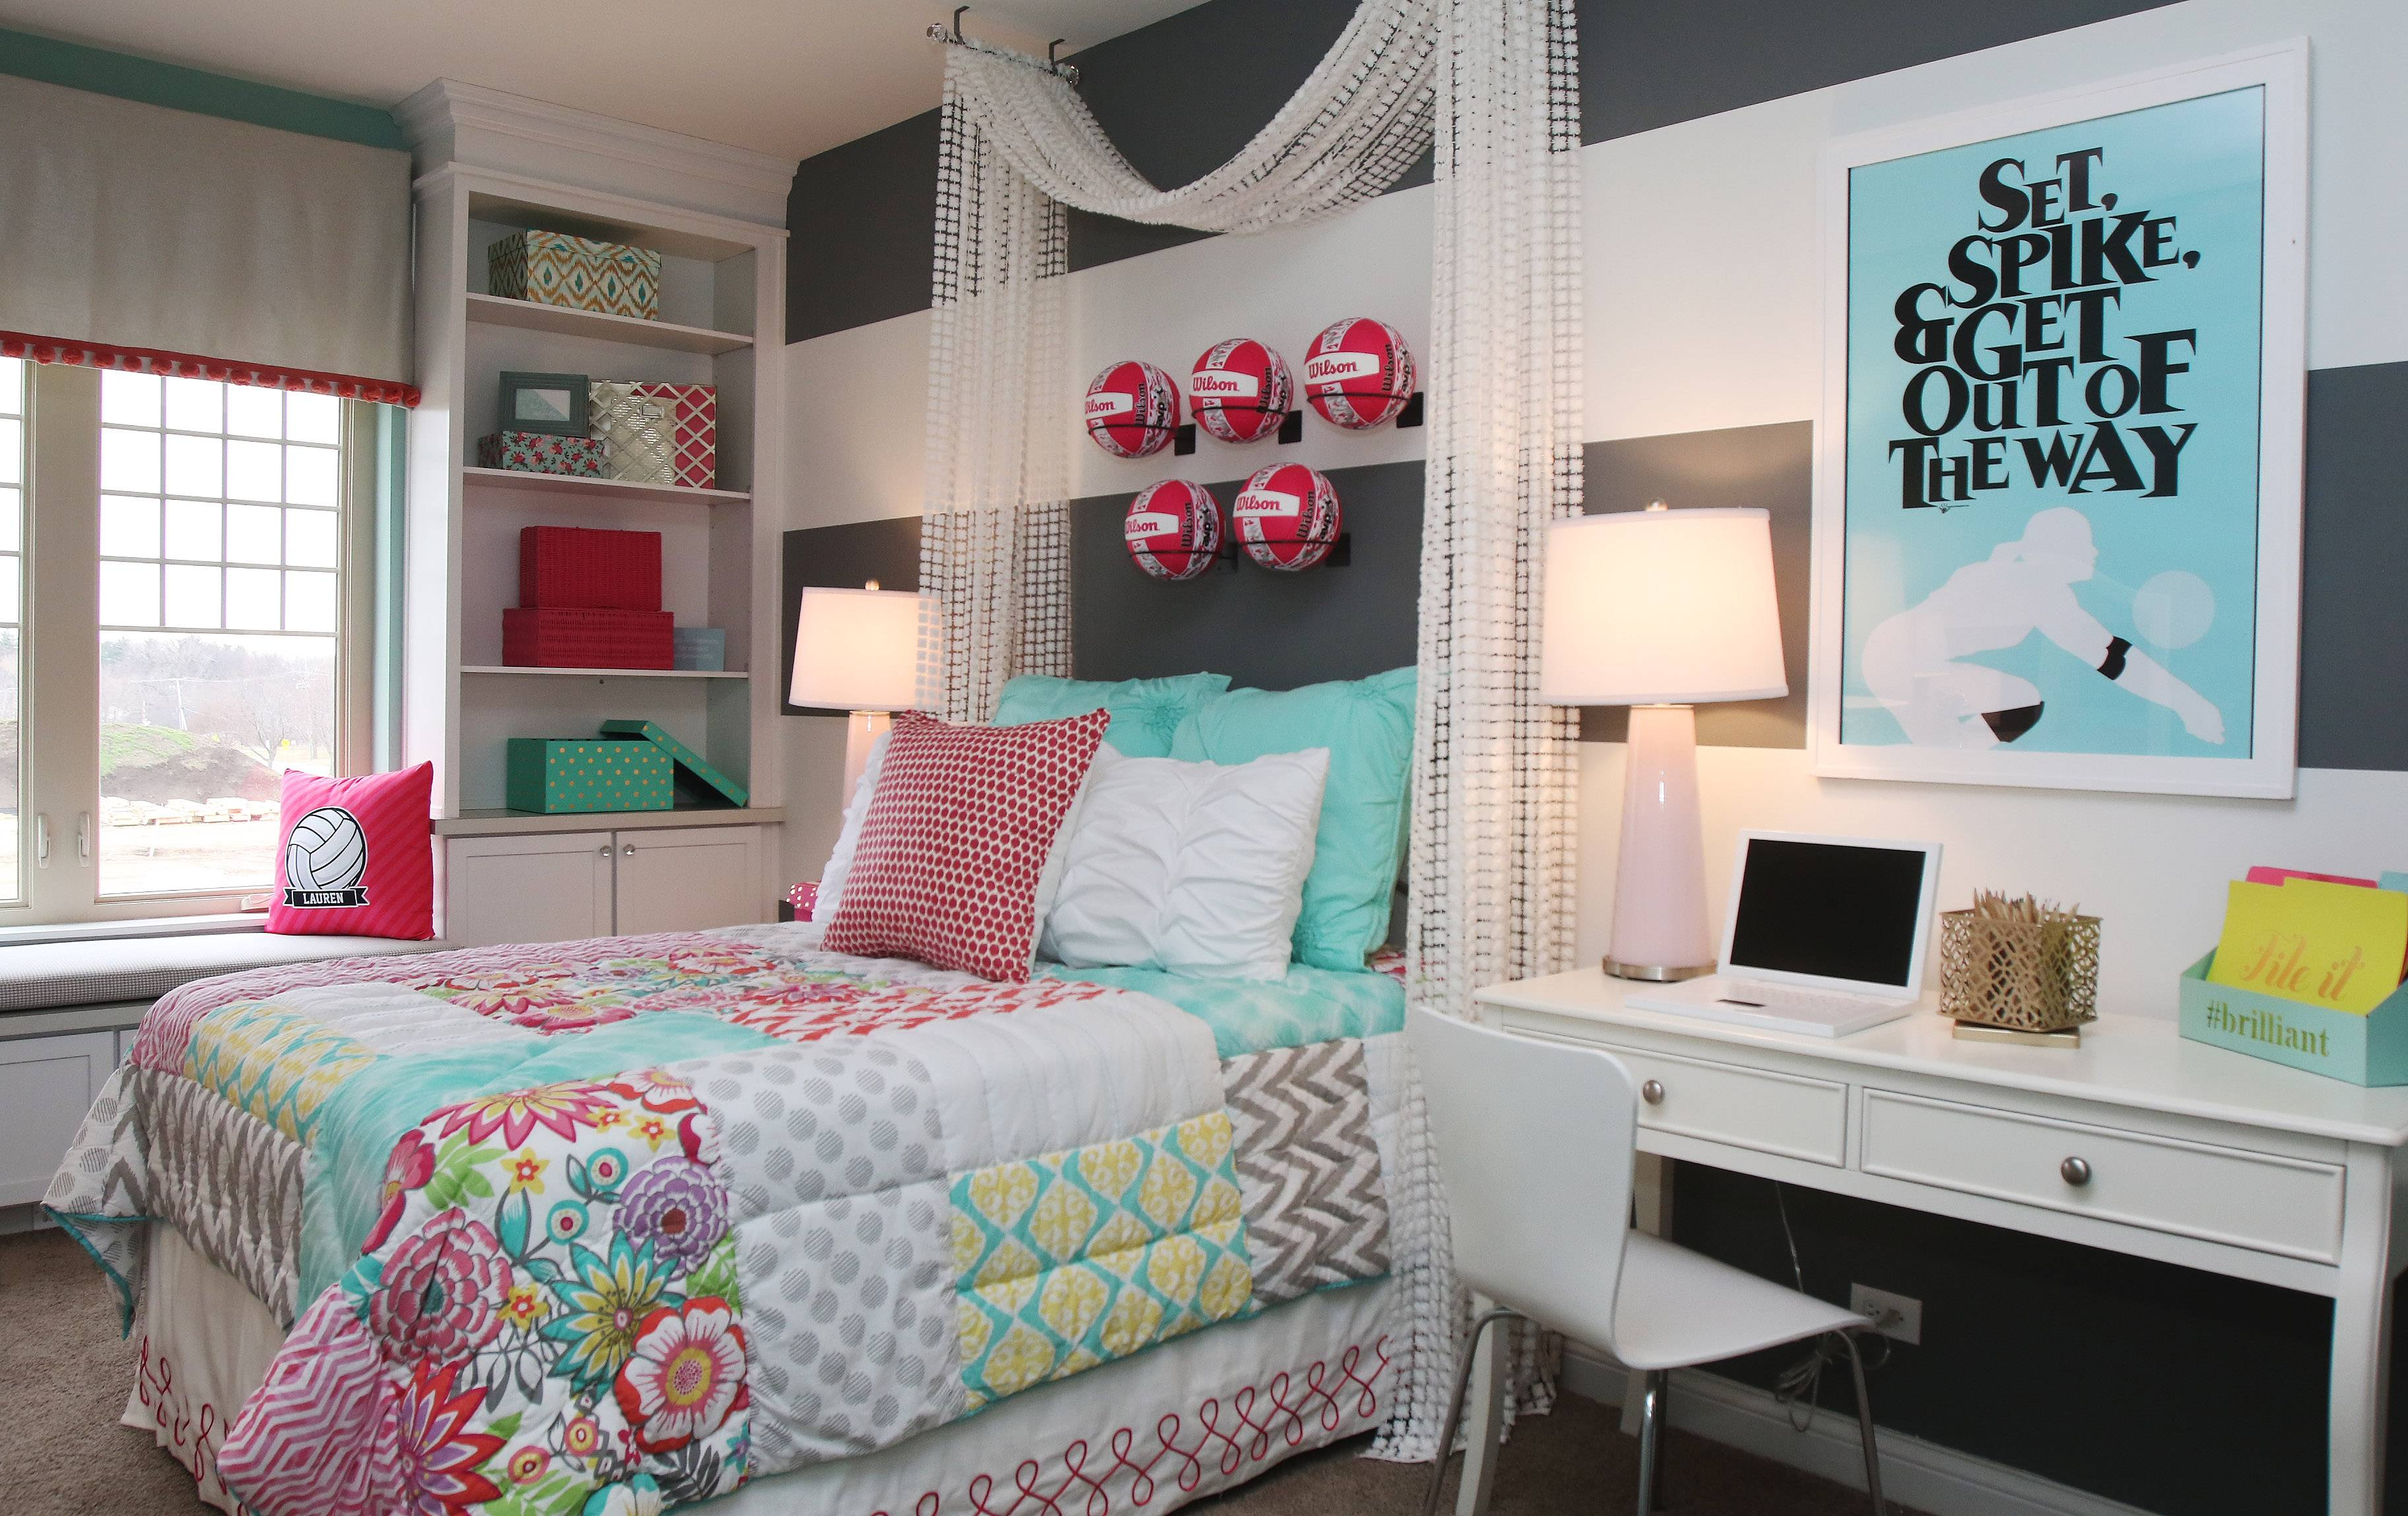 This girls bedroom in the Ontario model shows a canopy bed and pink and teal color scheme.